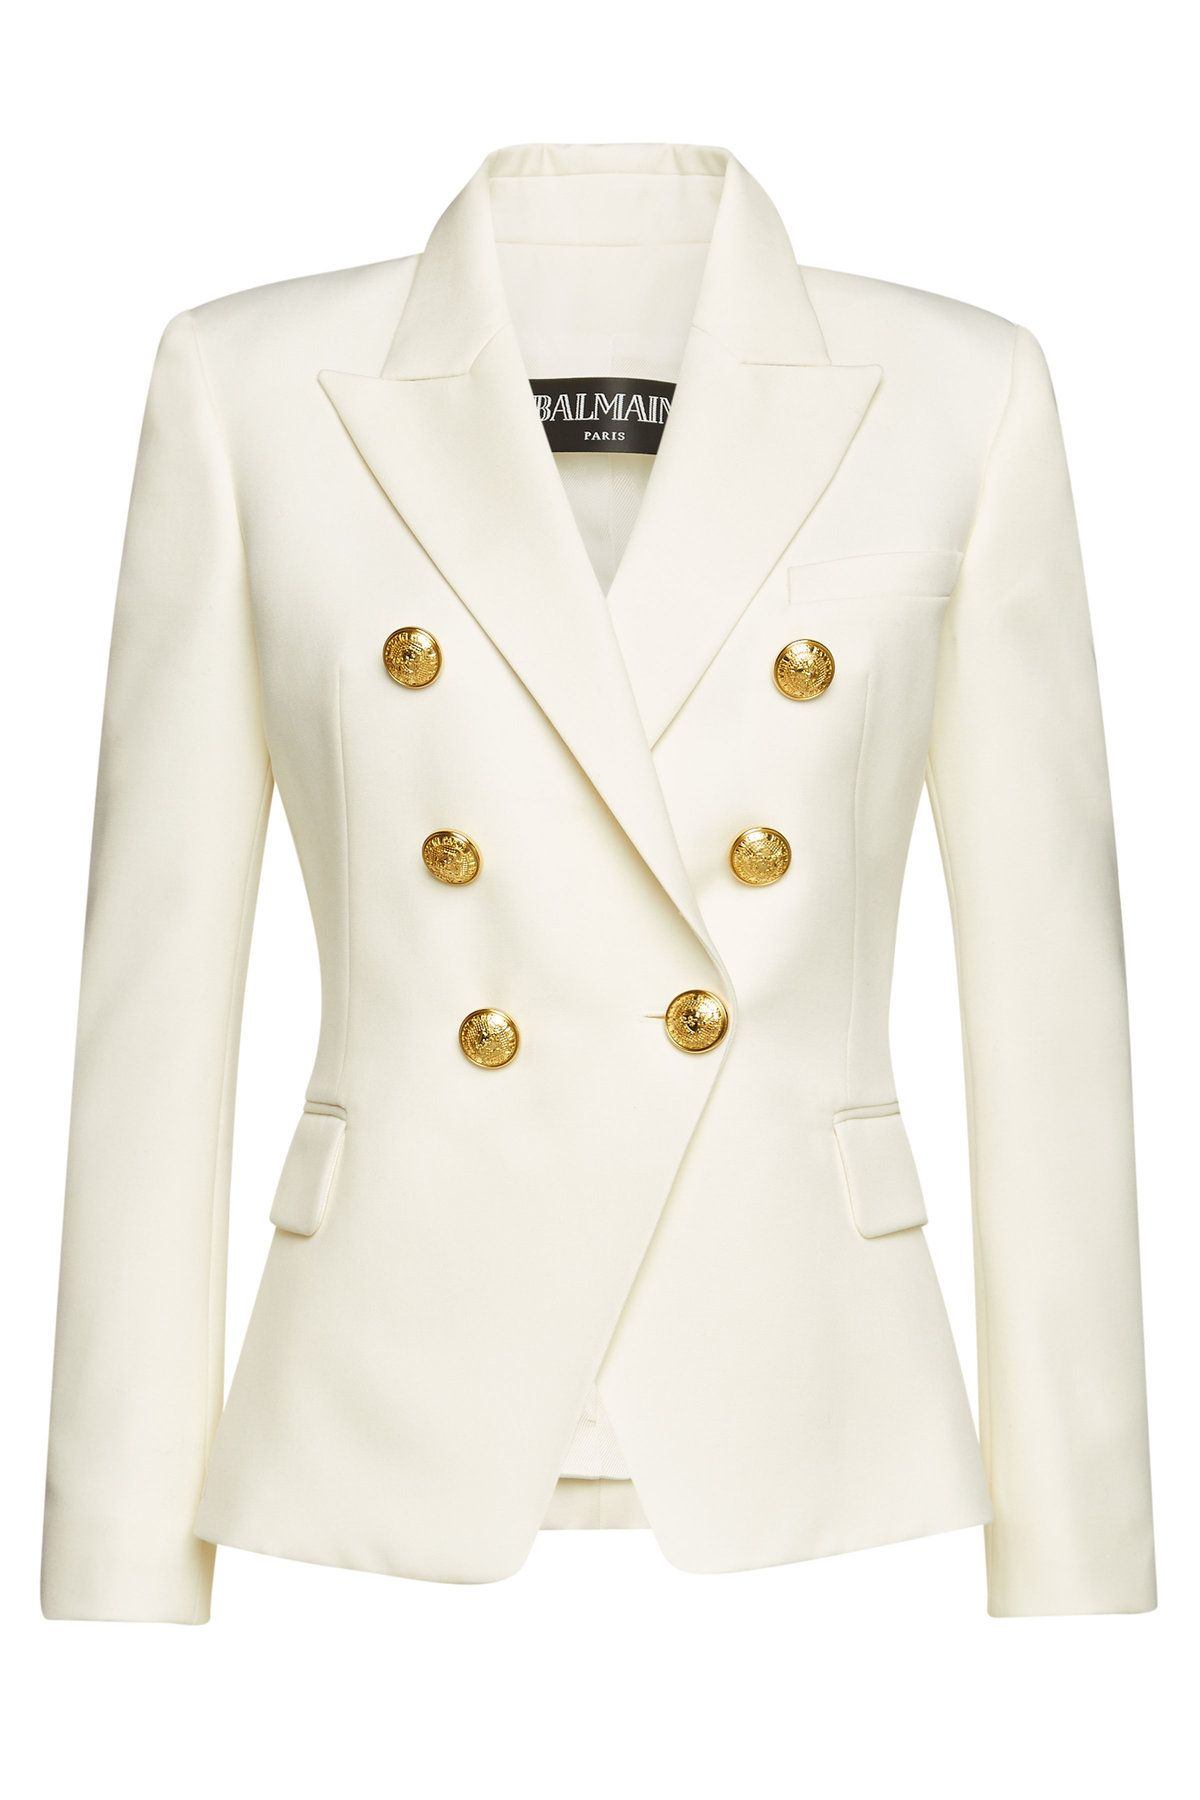 a2b9e0e3a Balmain Wool Blazer with Embossed Buttons in 2019 | SUIT JACKET'S ...